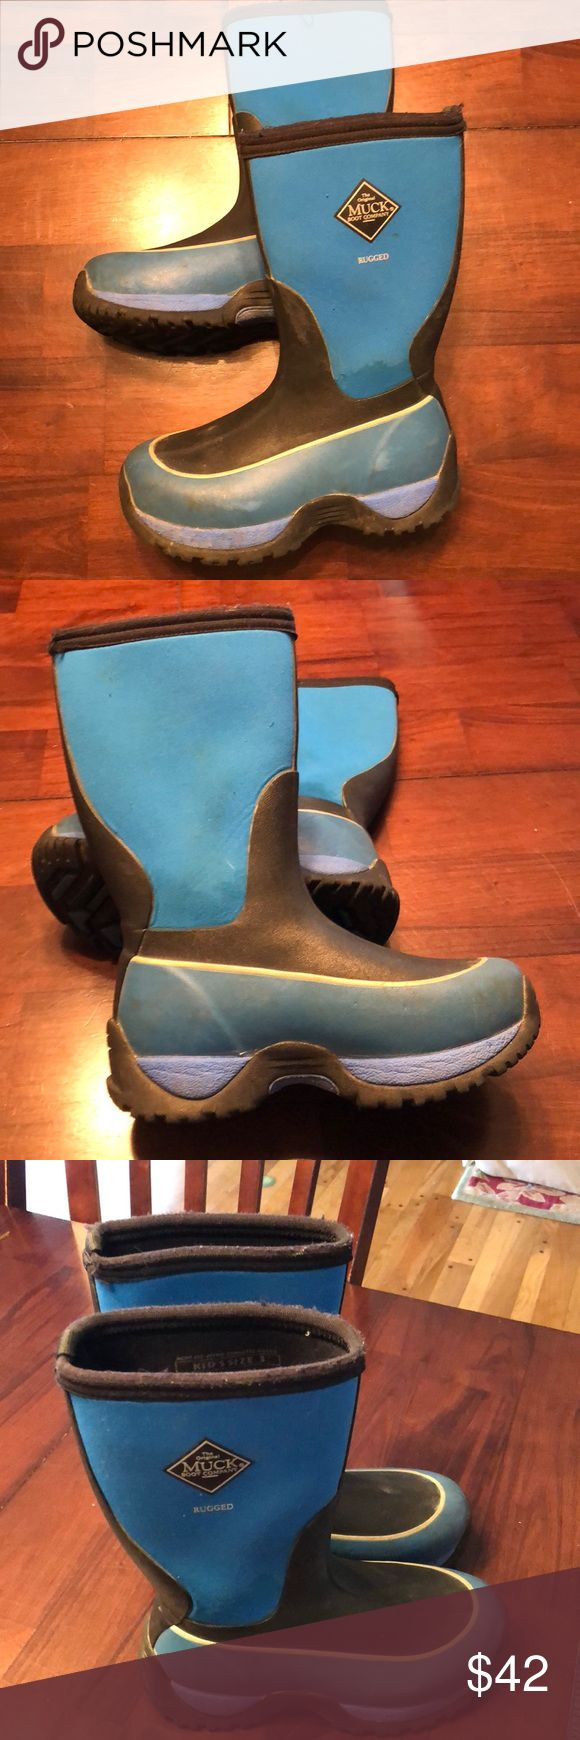 Boys Size 3 Muck Boots Lots of life left in these boots! No holes or rips. Slight discolor if I areas but still in good shape. Keeps feet warm and dry!!!! Muck Boot Company Shoes Rain & Snow Boots